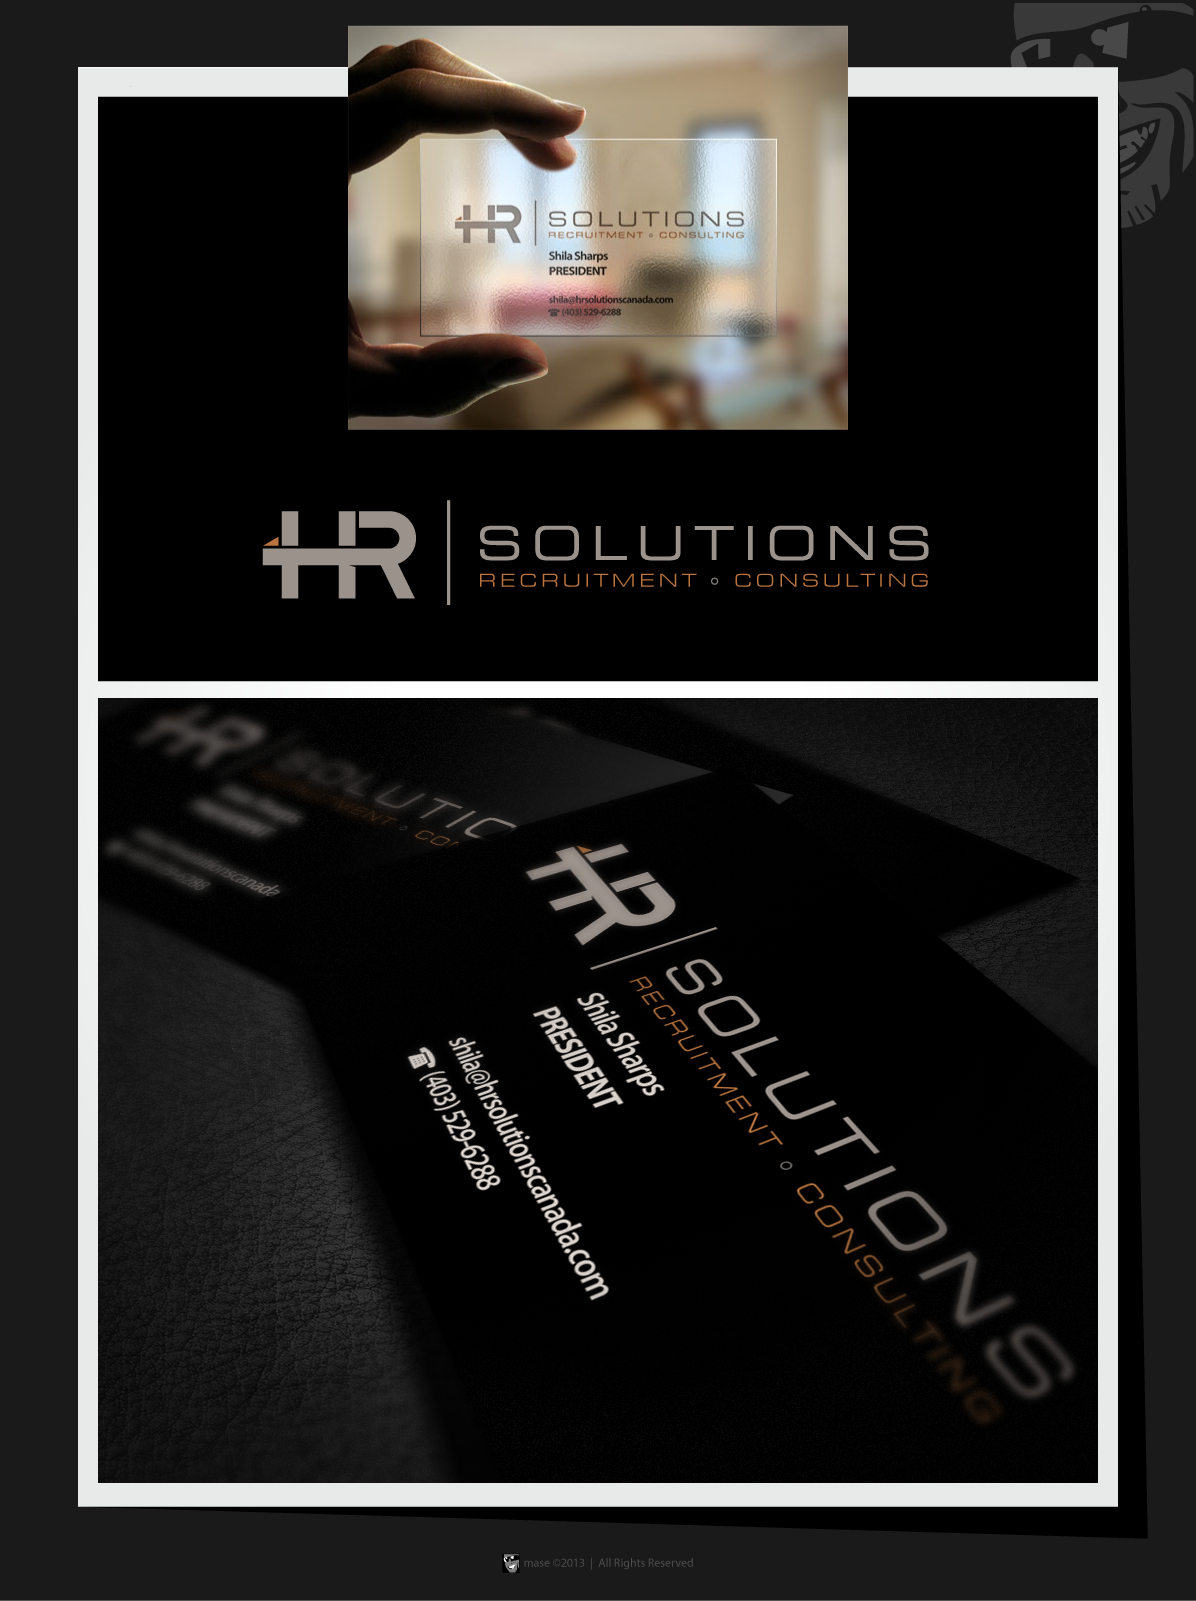 New logo and business card wanted for HR SOLUTIONS